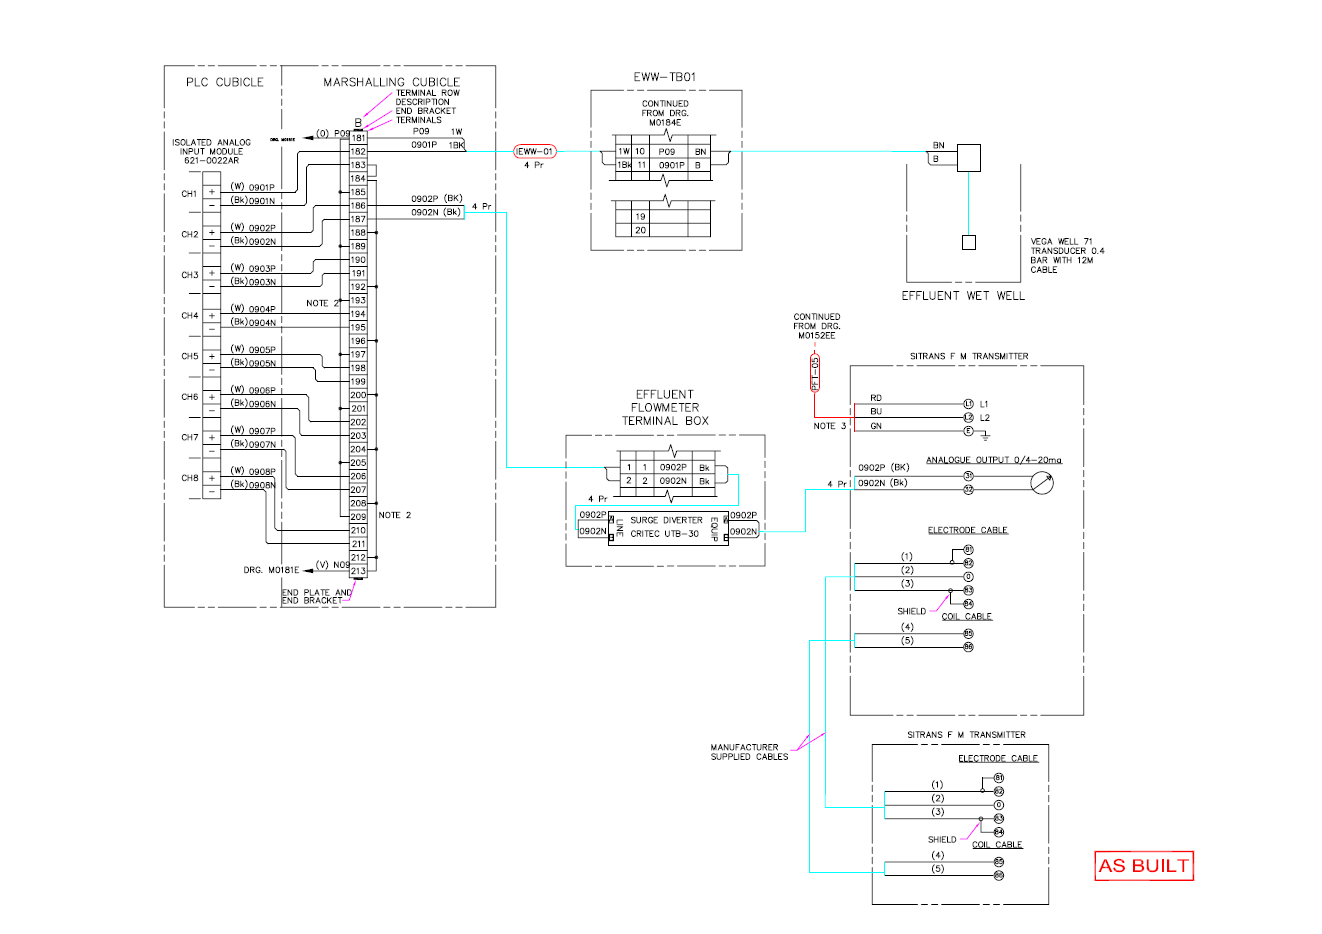 motor star delta wiring diagram pdf with Plc Project Wiring Diagram on Siemens Motor Starter Wiring Diagram likewise ment 20338 together with Contactor Wiring Diagram Single Phase furthermore Electric Motor Control In Industrial furthermore Century Ac Motor Wiring.